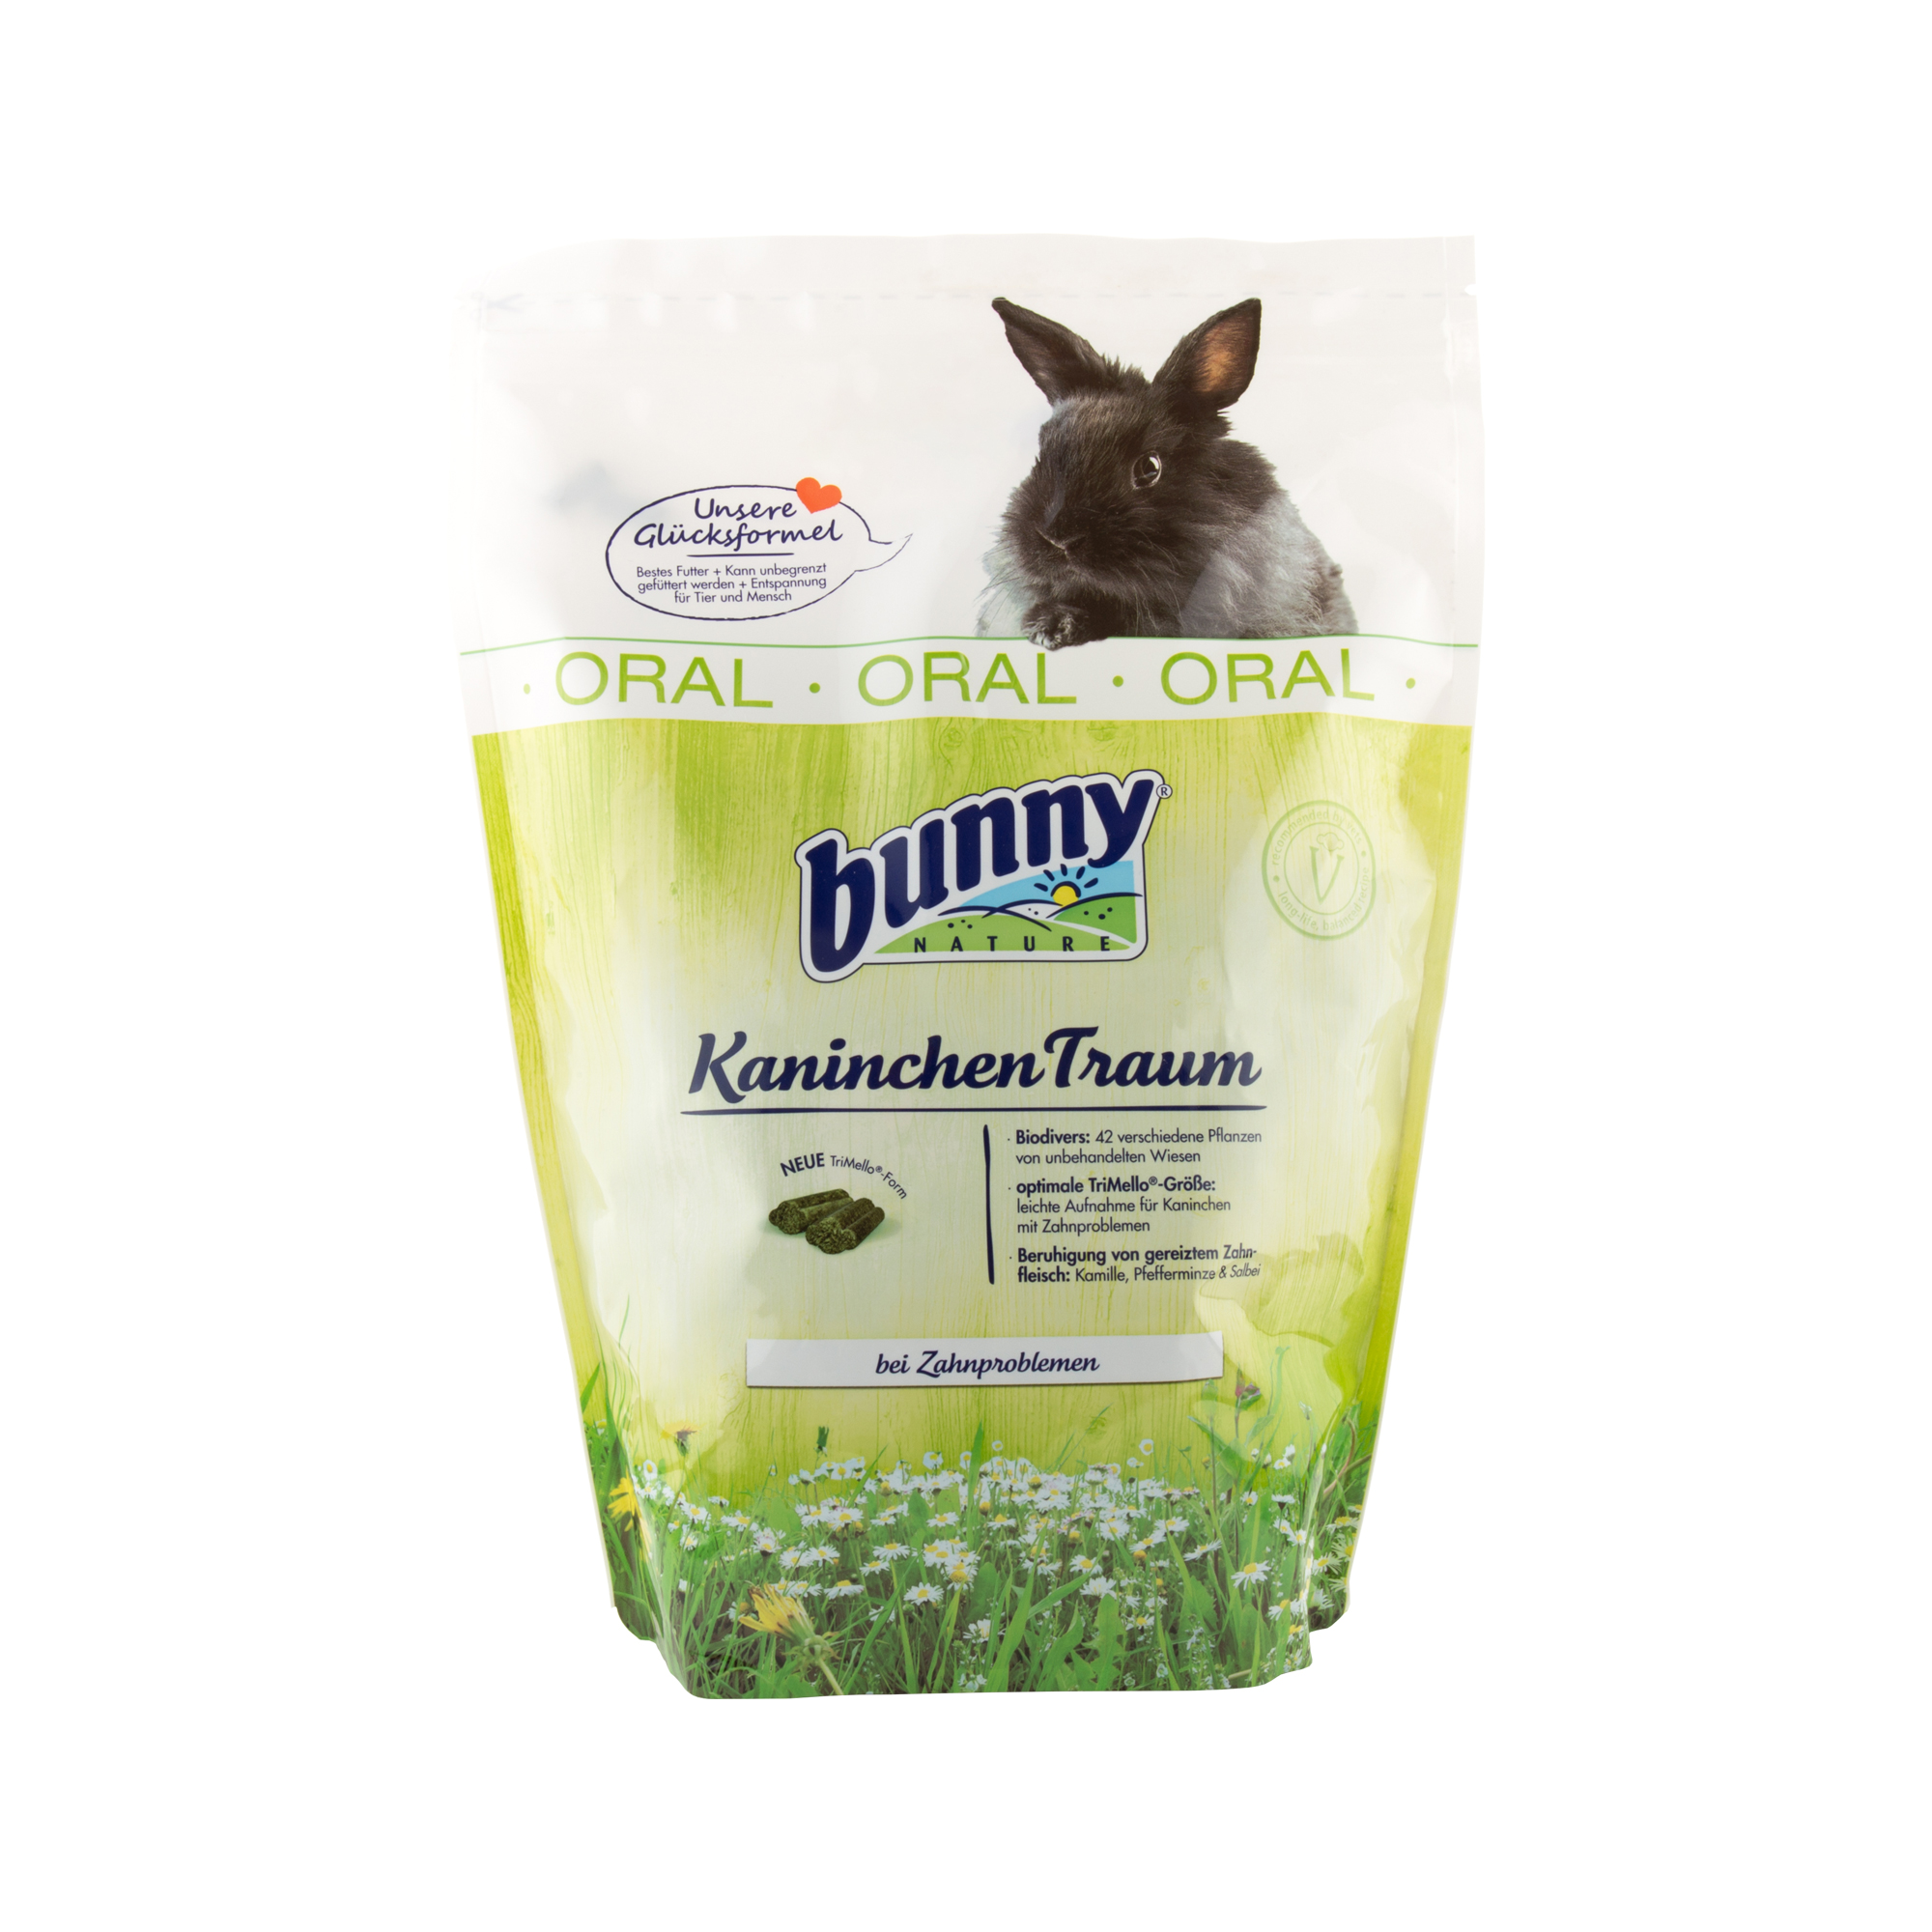 Bunny Nature KaninchenTraum Oral